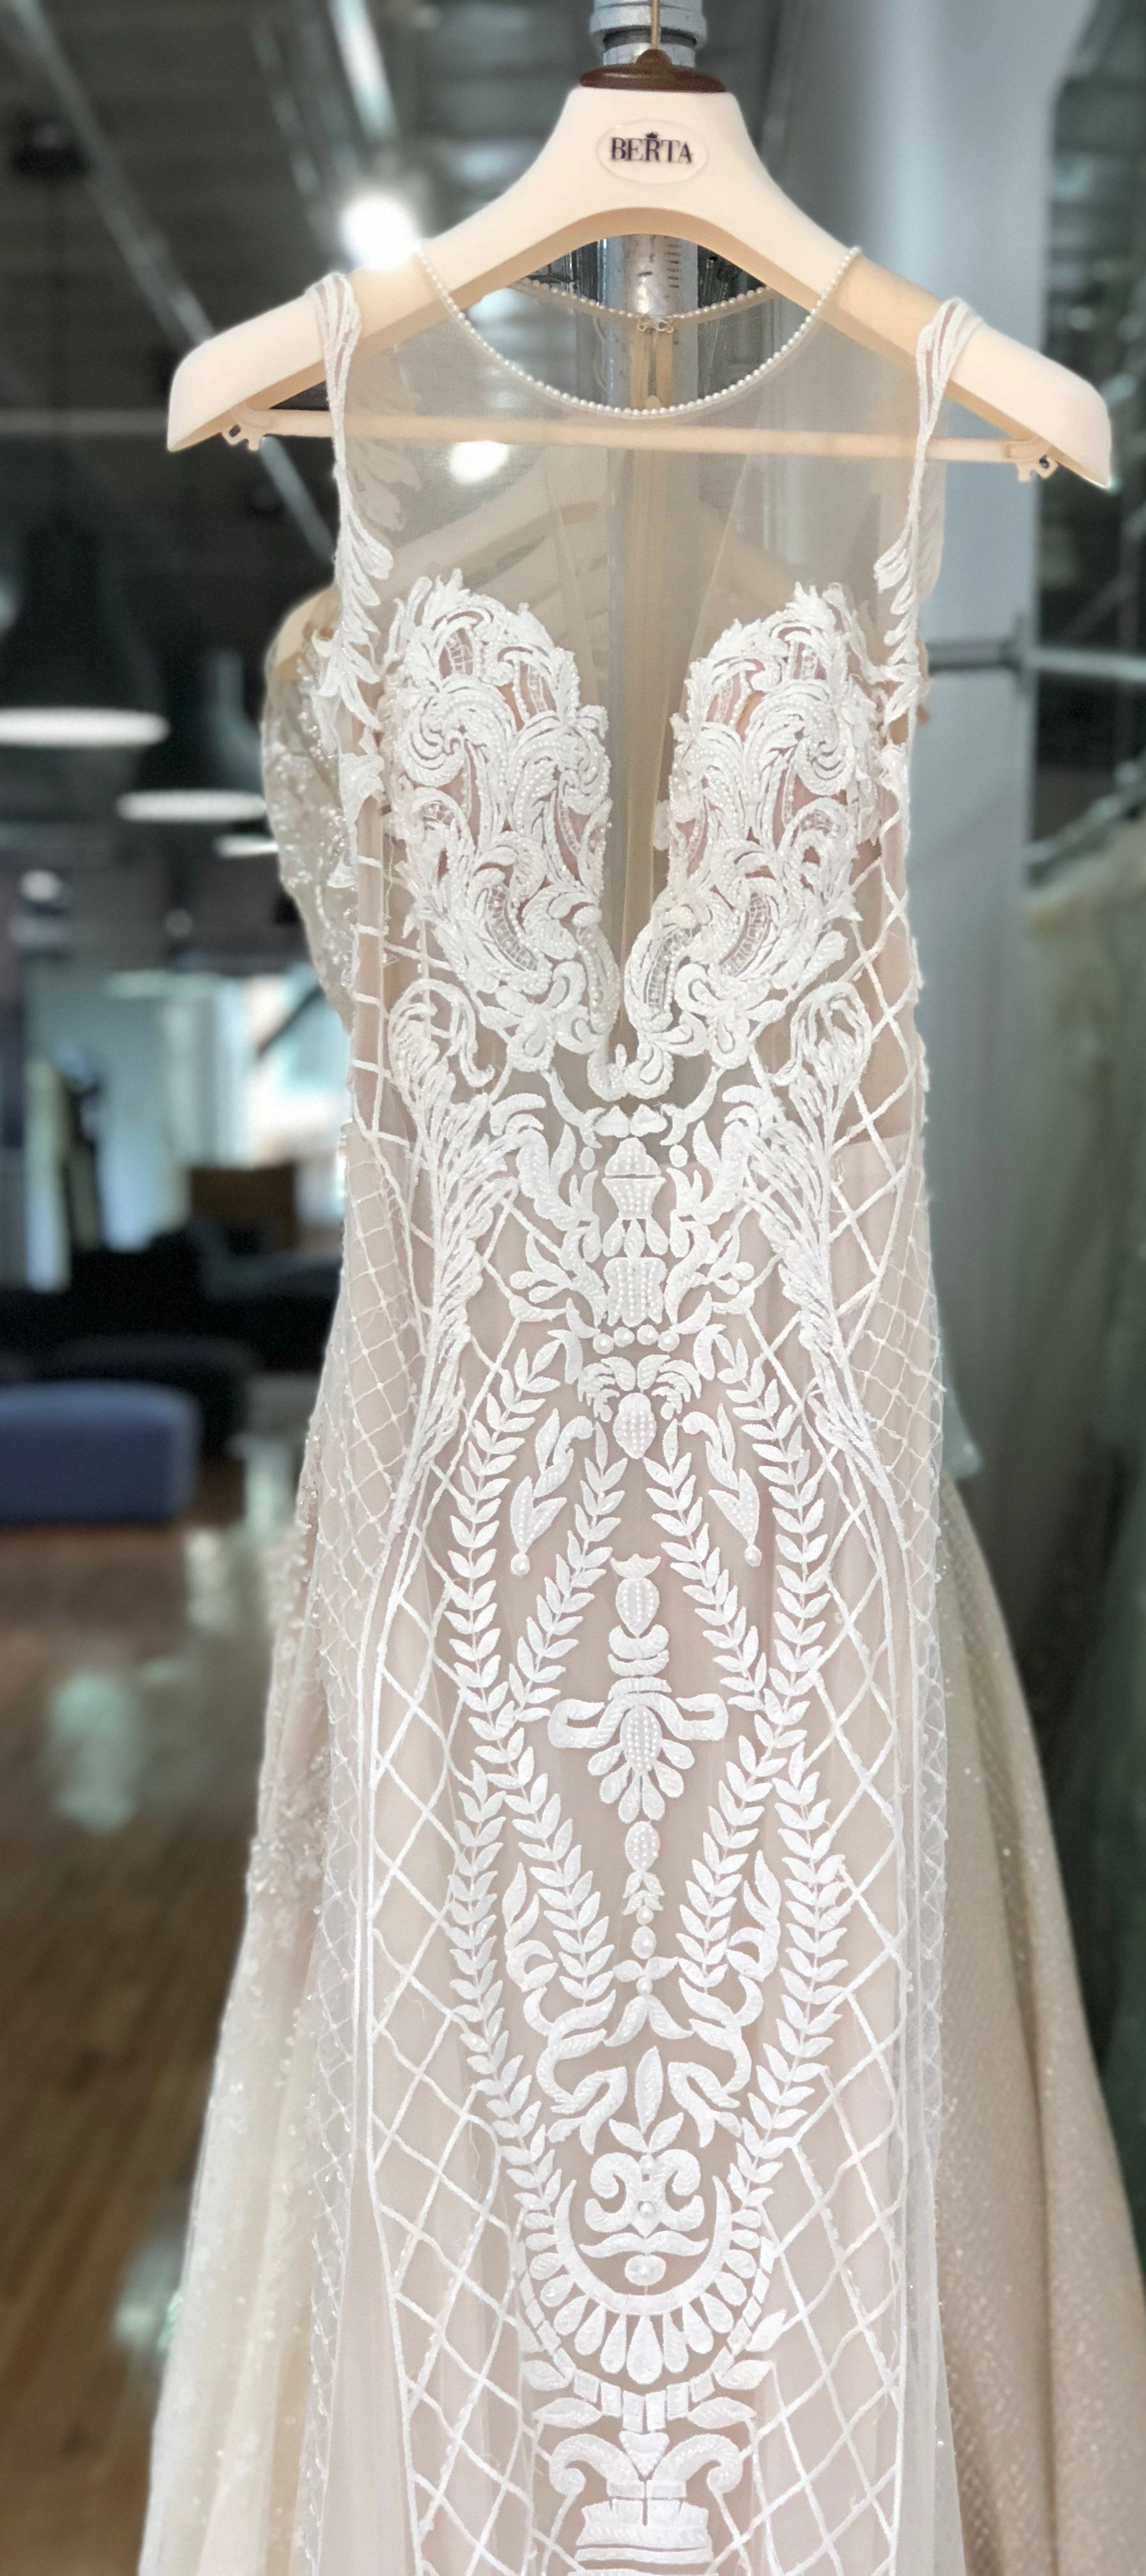 Iconic Berta Style 15 114 Available At Our Nyc Store For Special